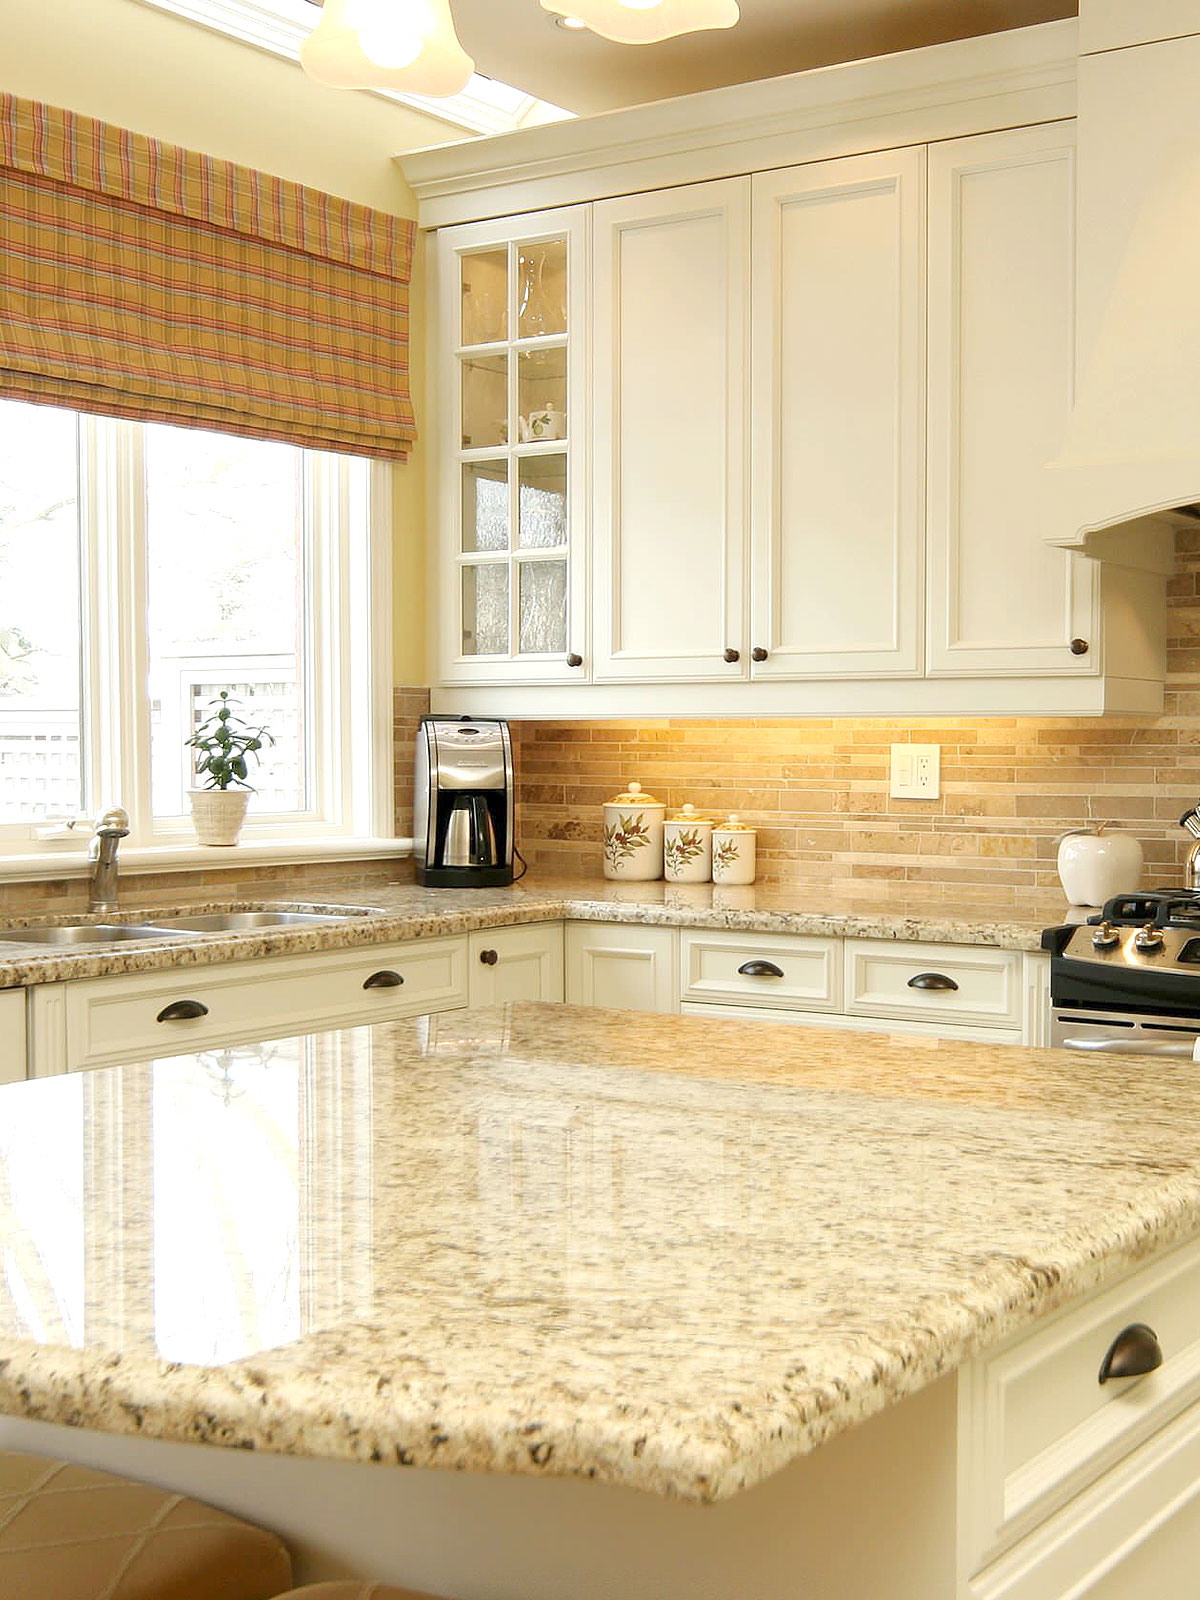 55 Beige Backsplash Ideas Don T Mistake Beige For Being Boring